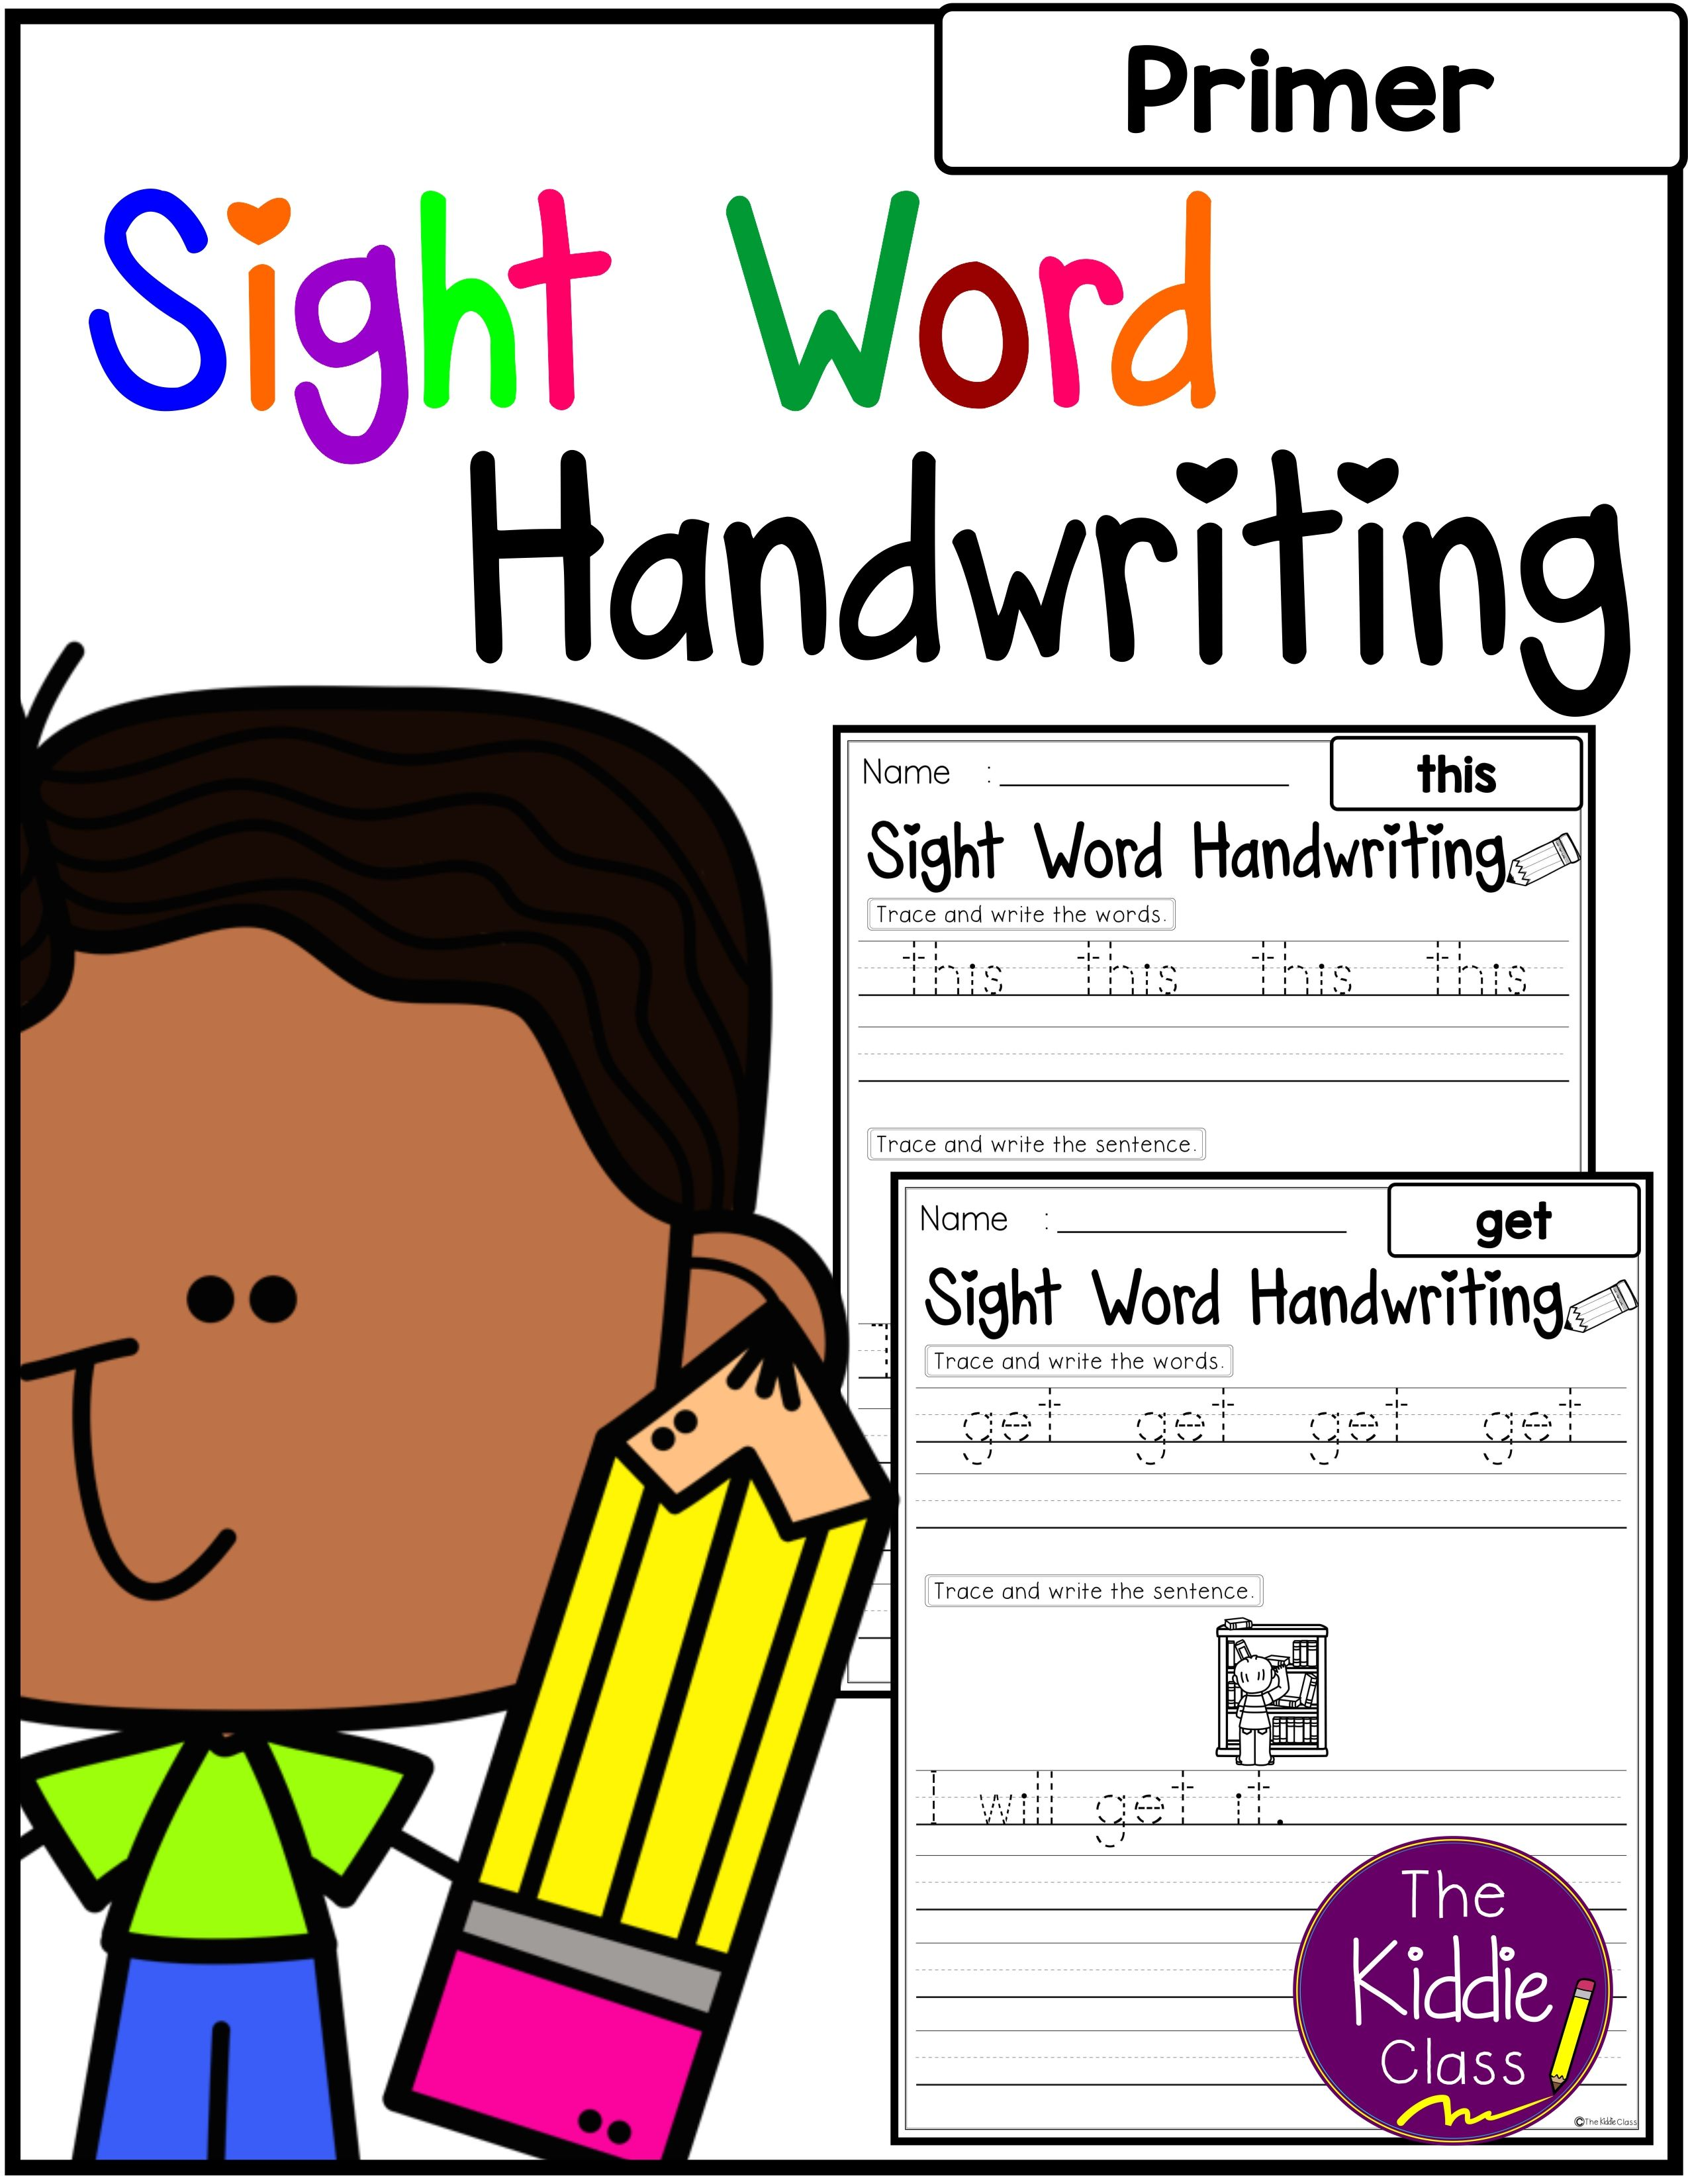 Sight Words Handwriting Primer